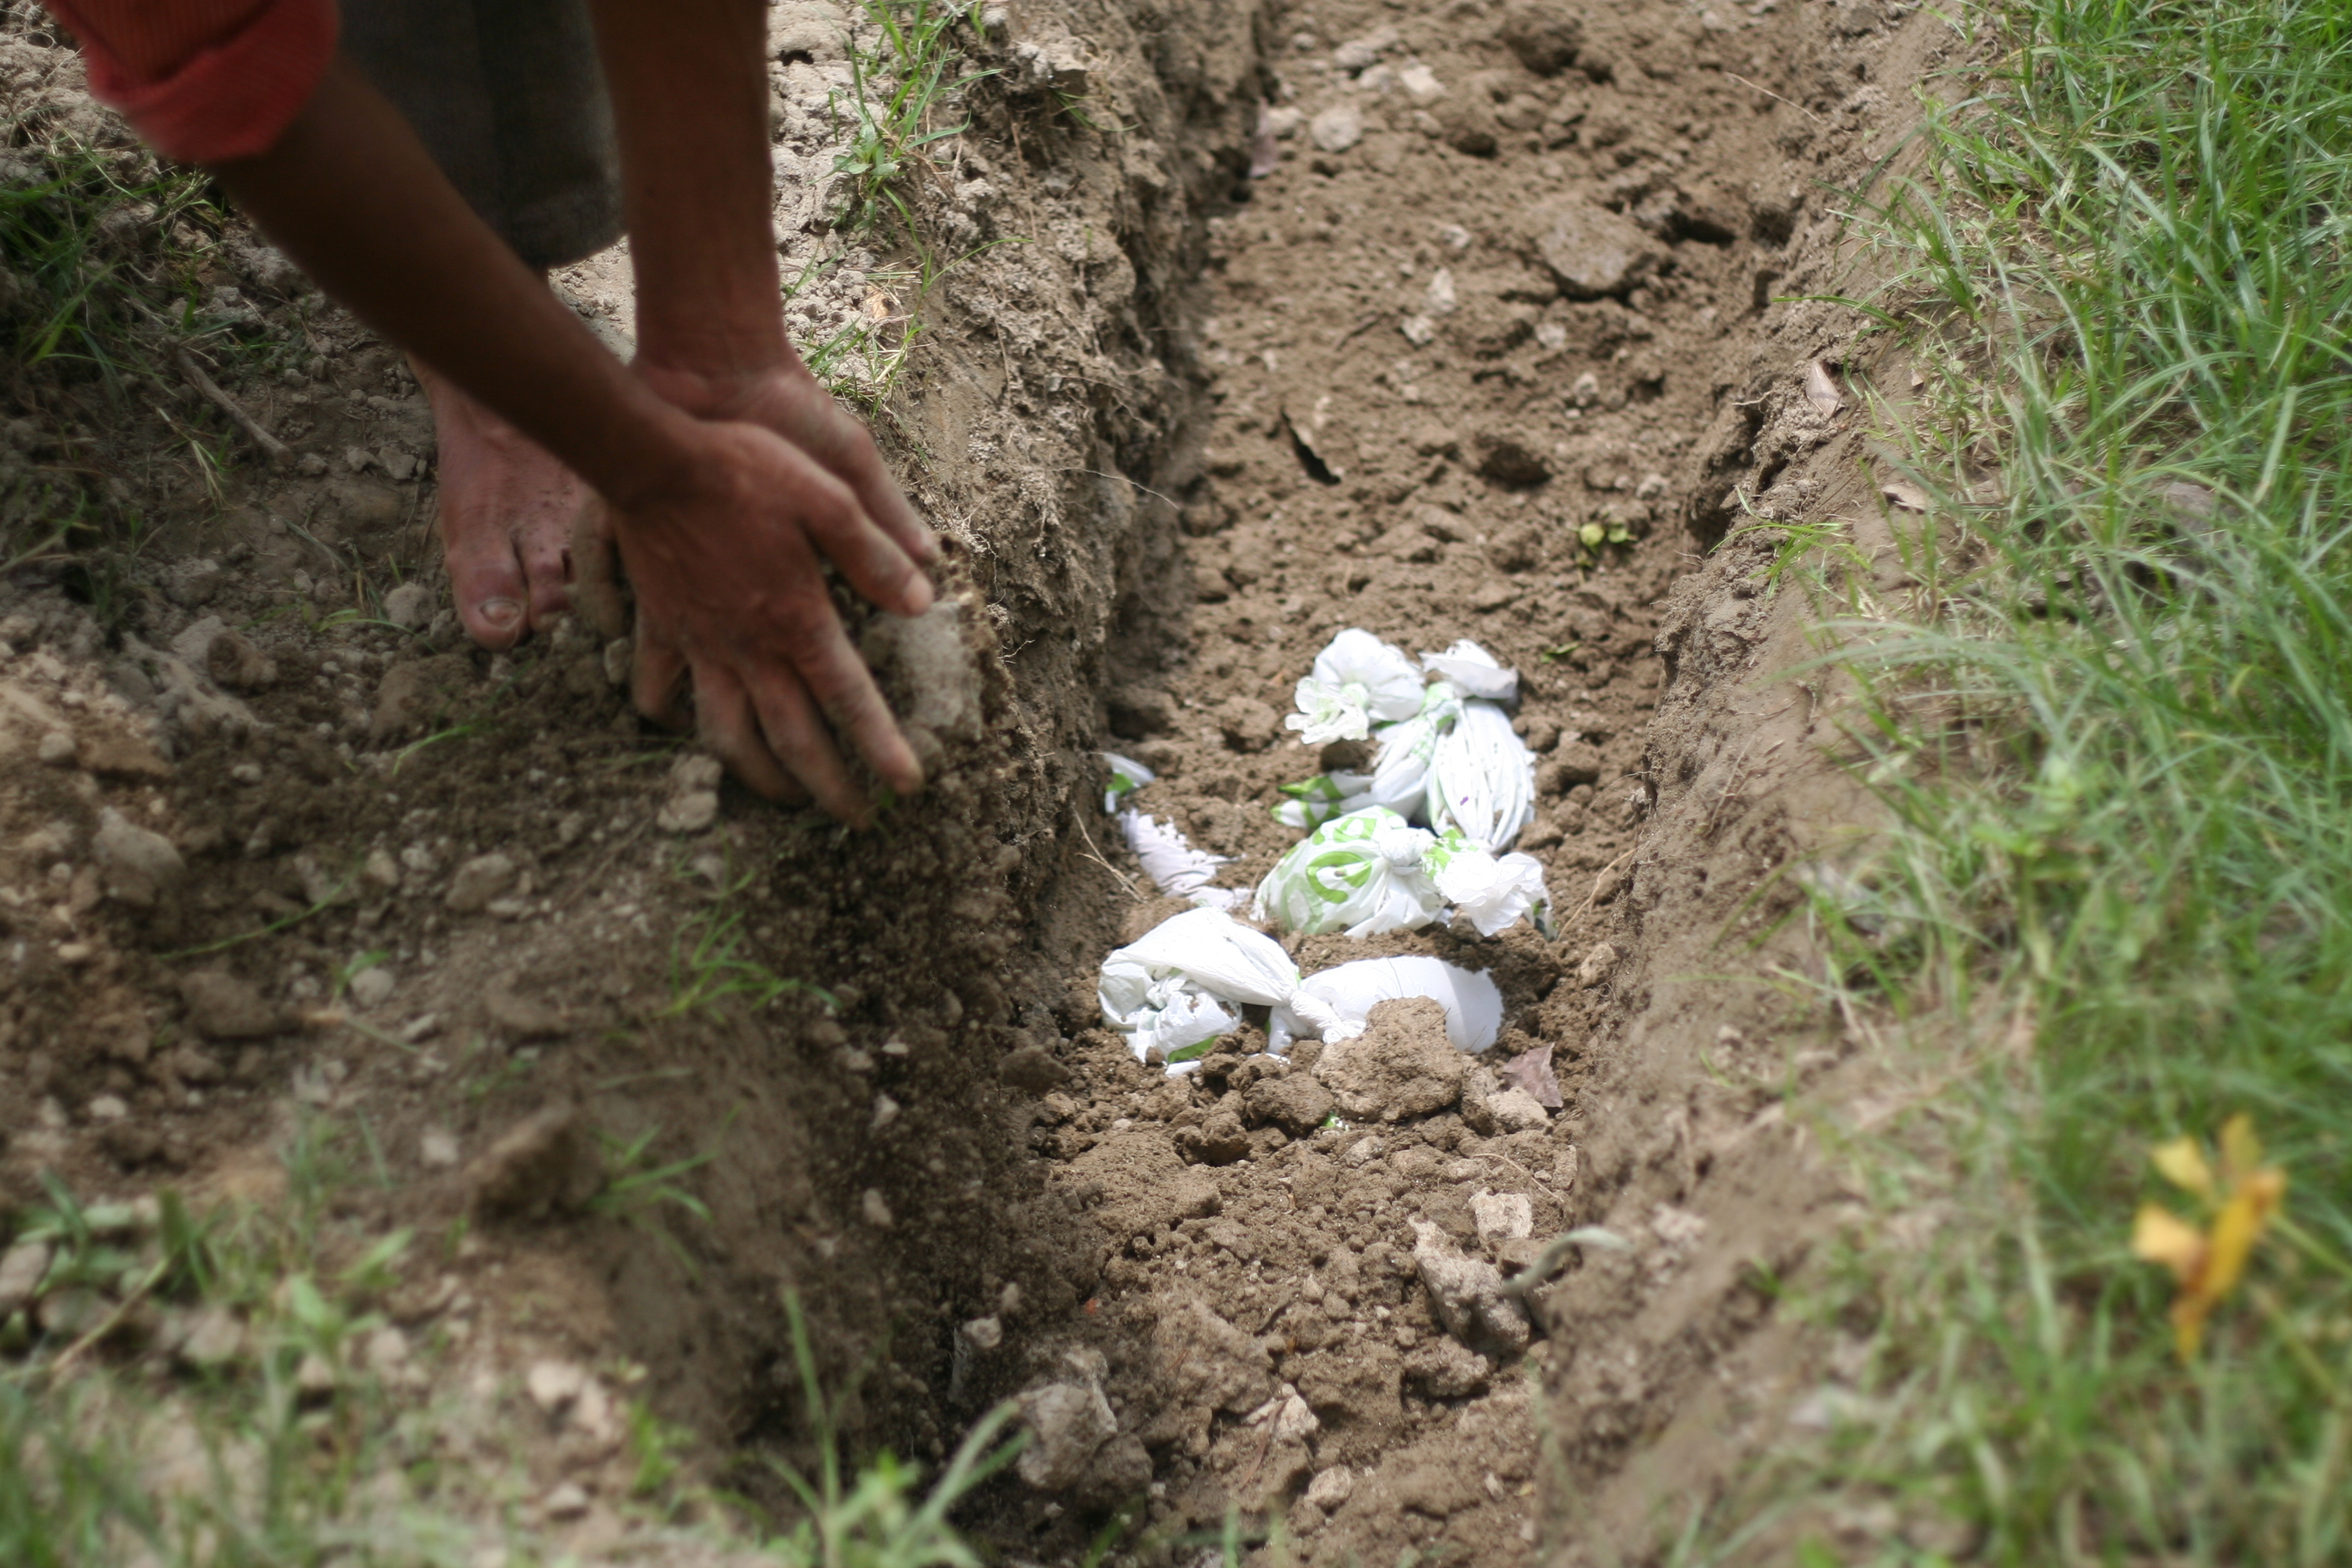 Image of waste bags being buried